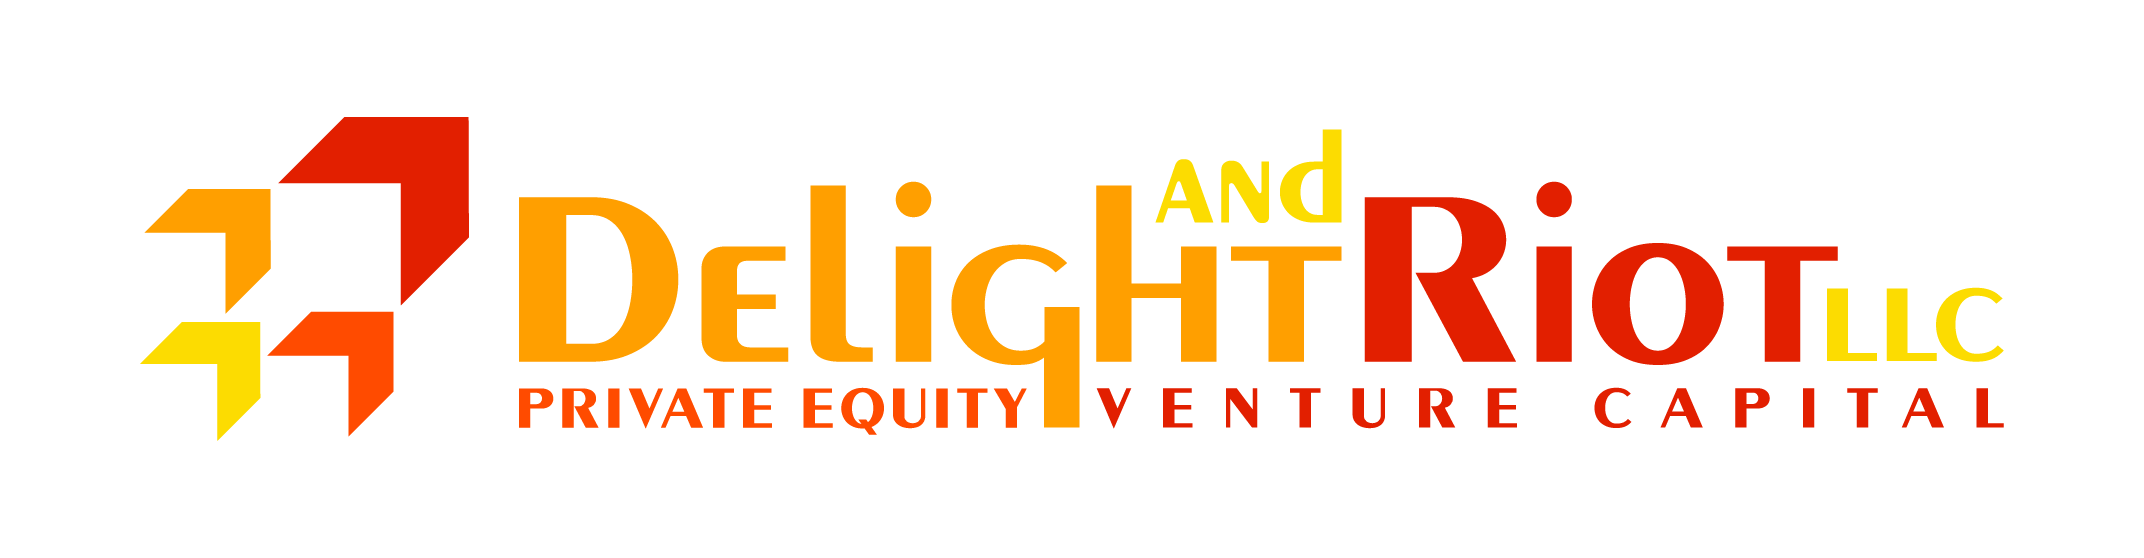 Delight And Riot Private Equity and Venture Capital